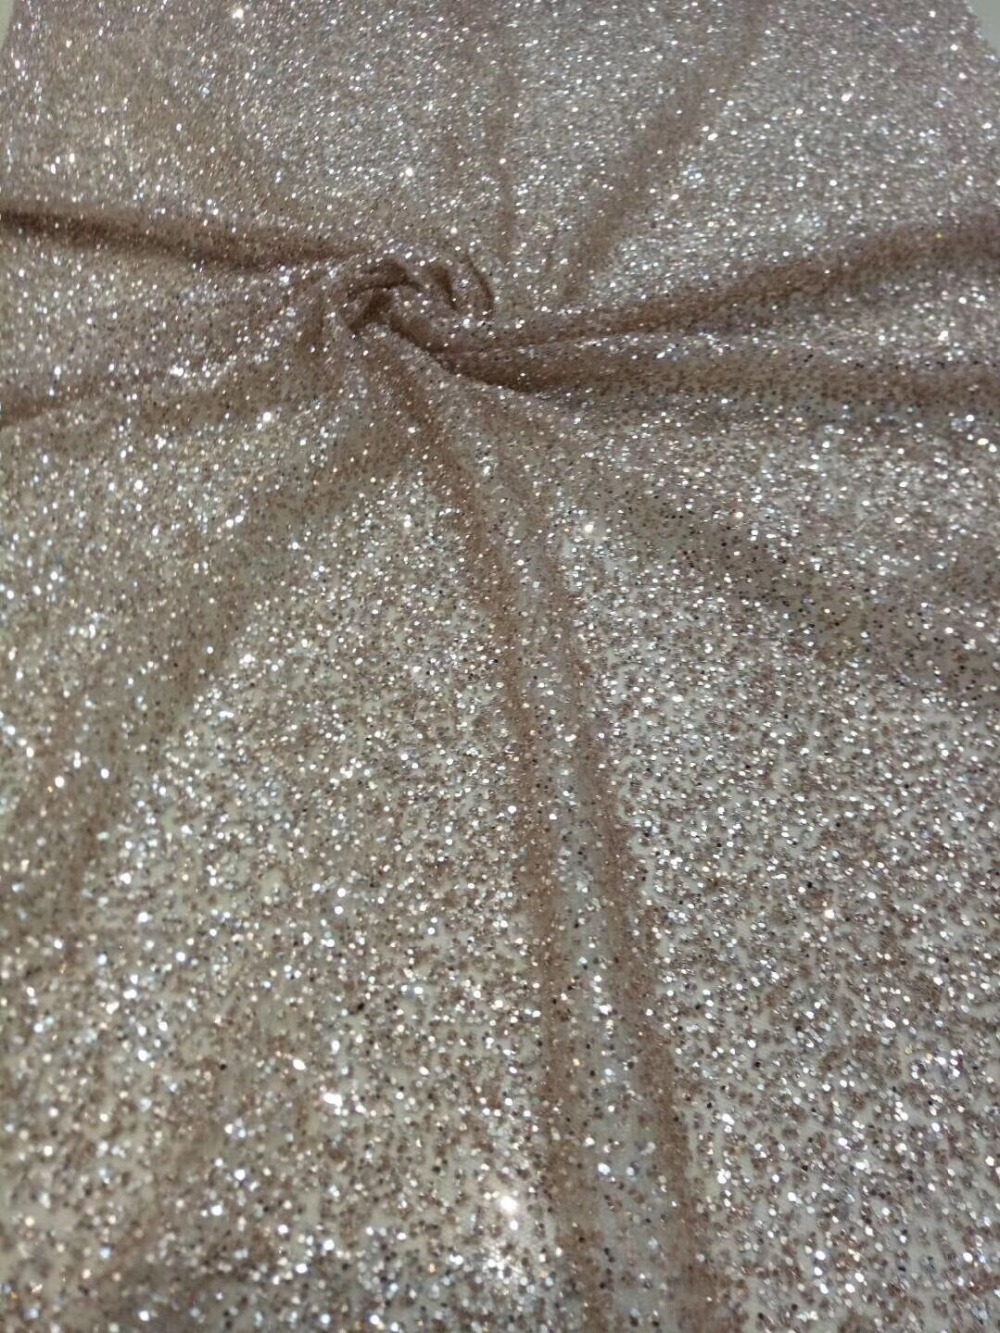 David 10 2419 glued glitter print african mesh tulle lace 5yards for evening dress